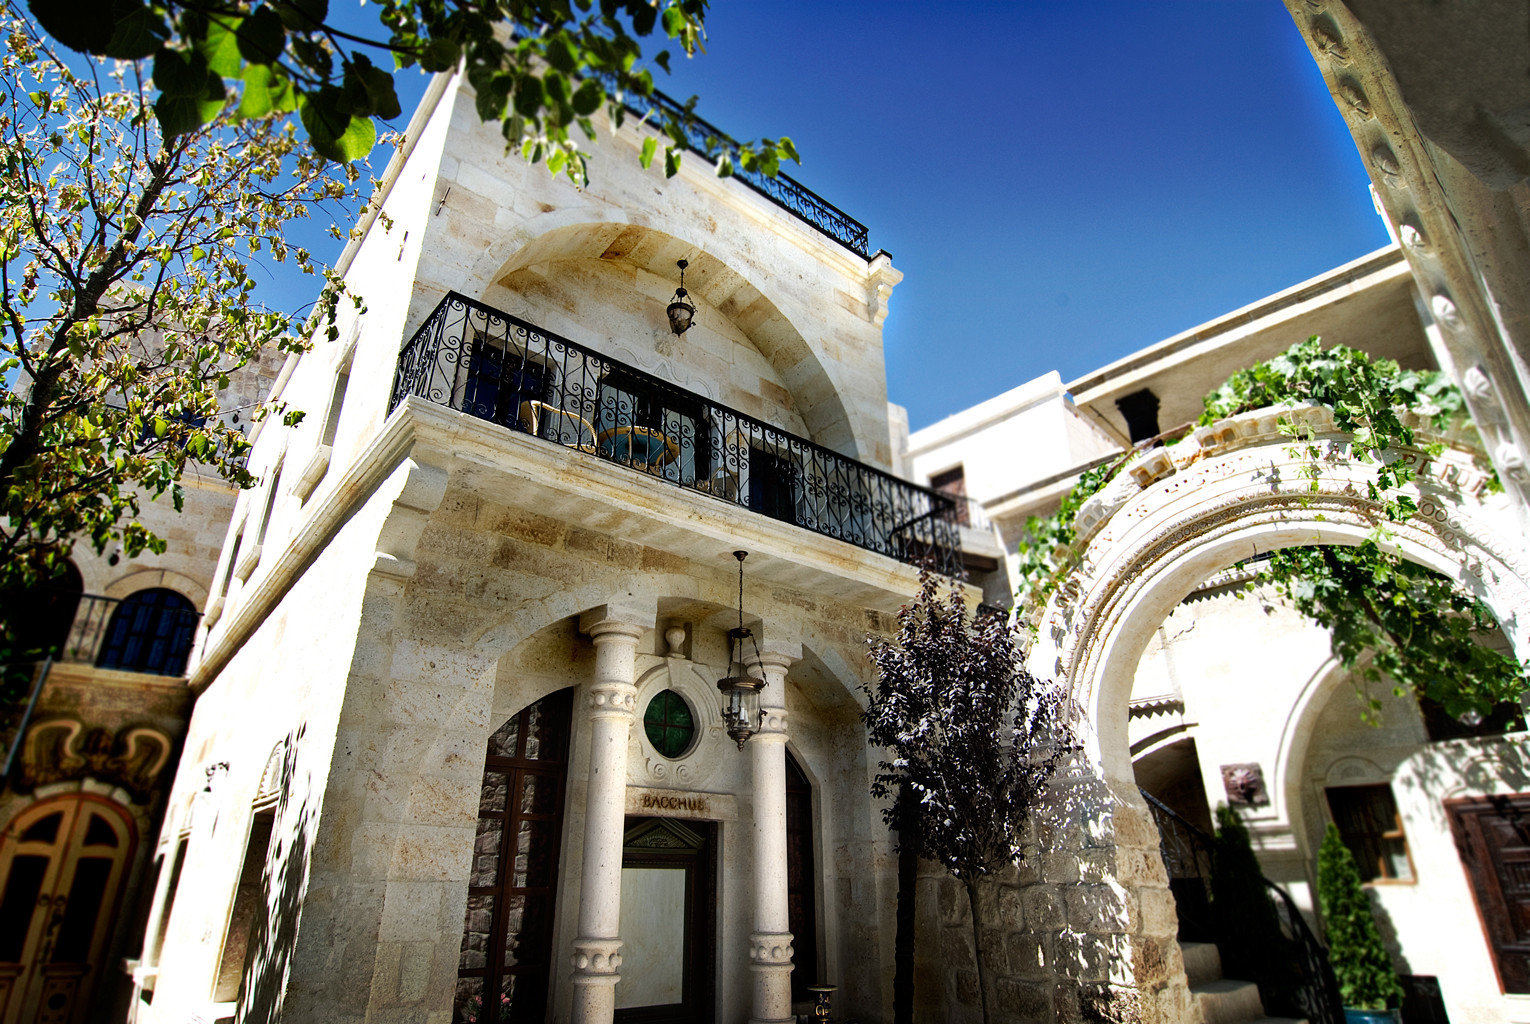 Architecture Exterior Historic Rustic building landmark neighbourhood place of worship arch stone colonnade